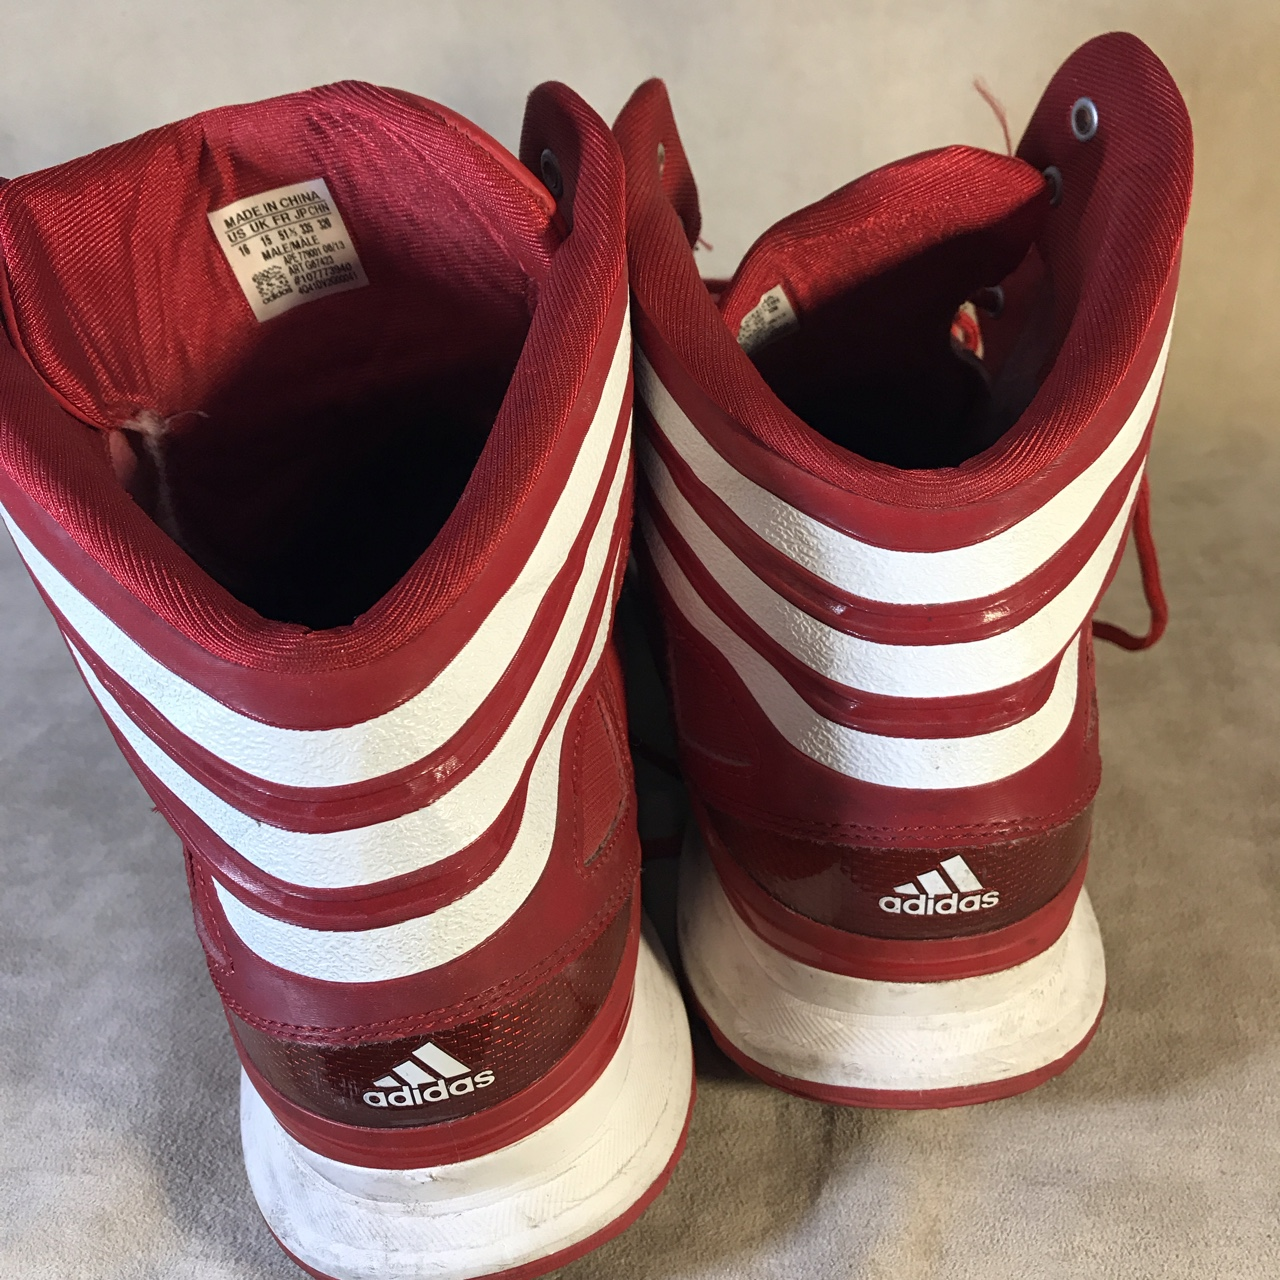 Adidas Shoes Depop Basketball Red 779001 Ape Sneakers ordBCex